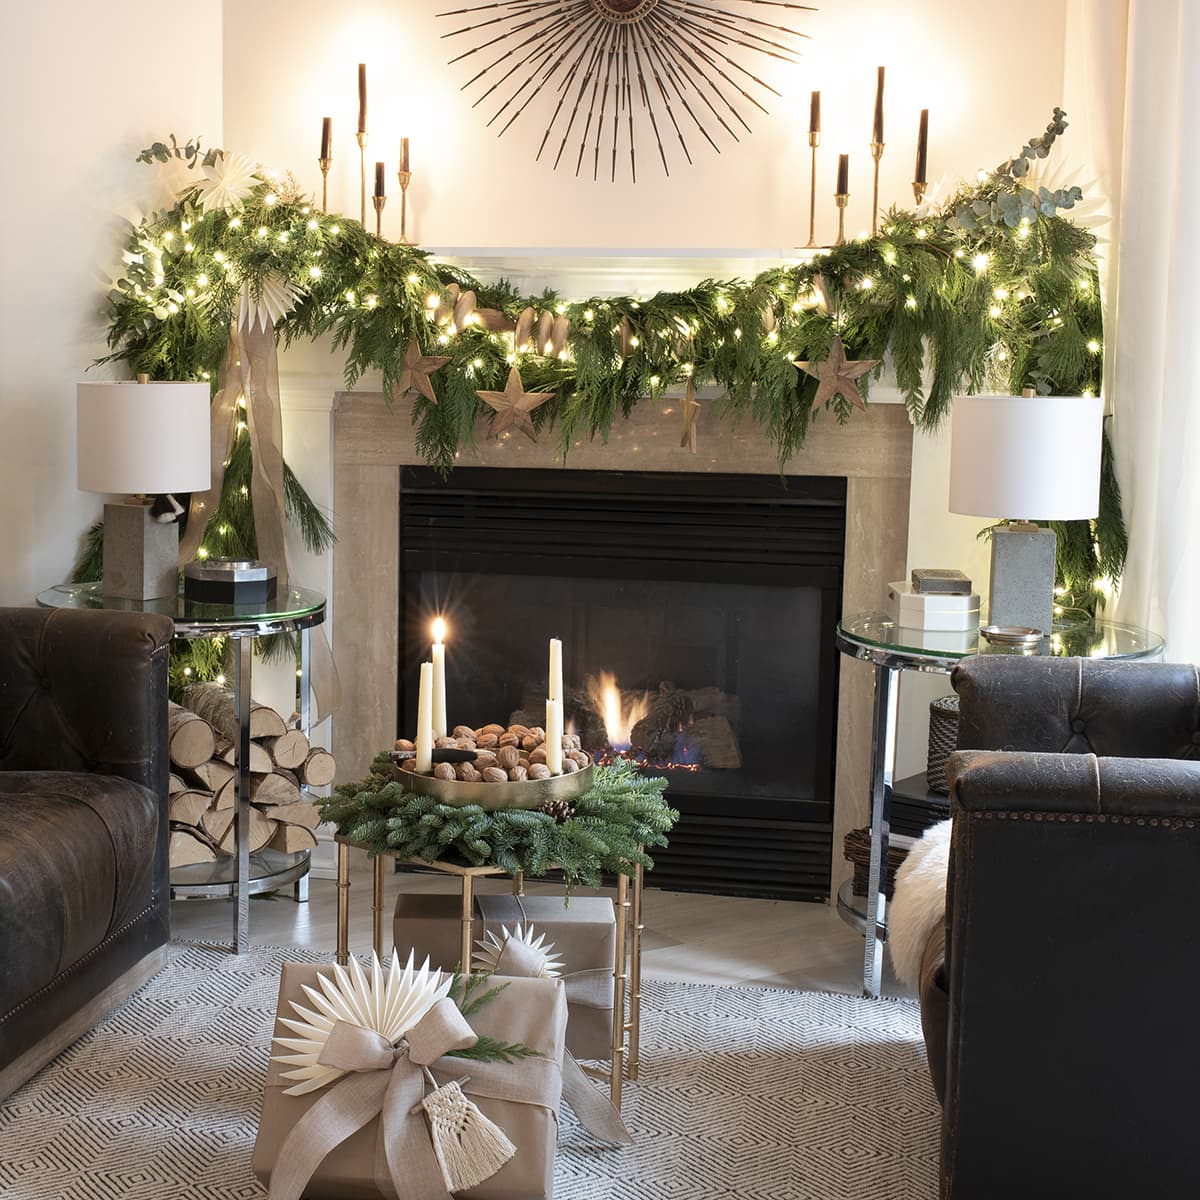 Holiday magic with plug-in Christmas tree fairy lights